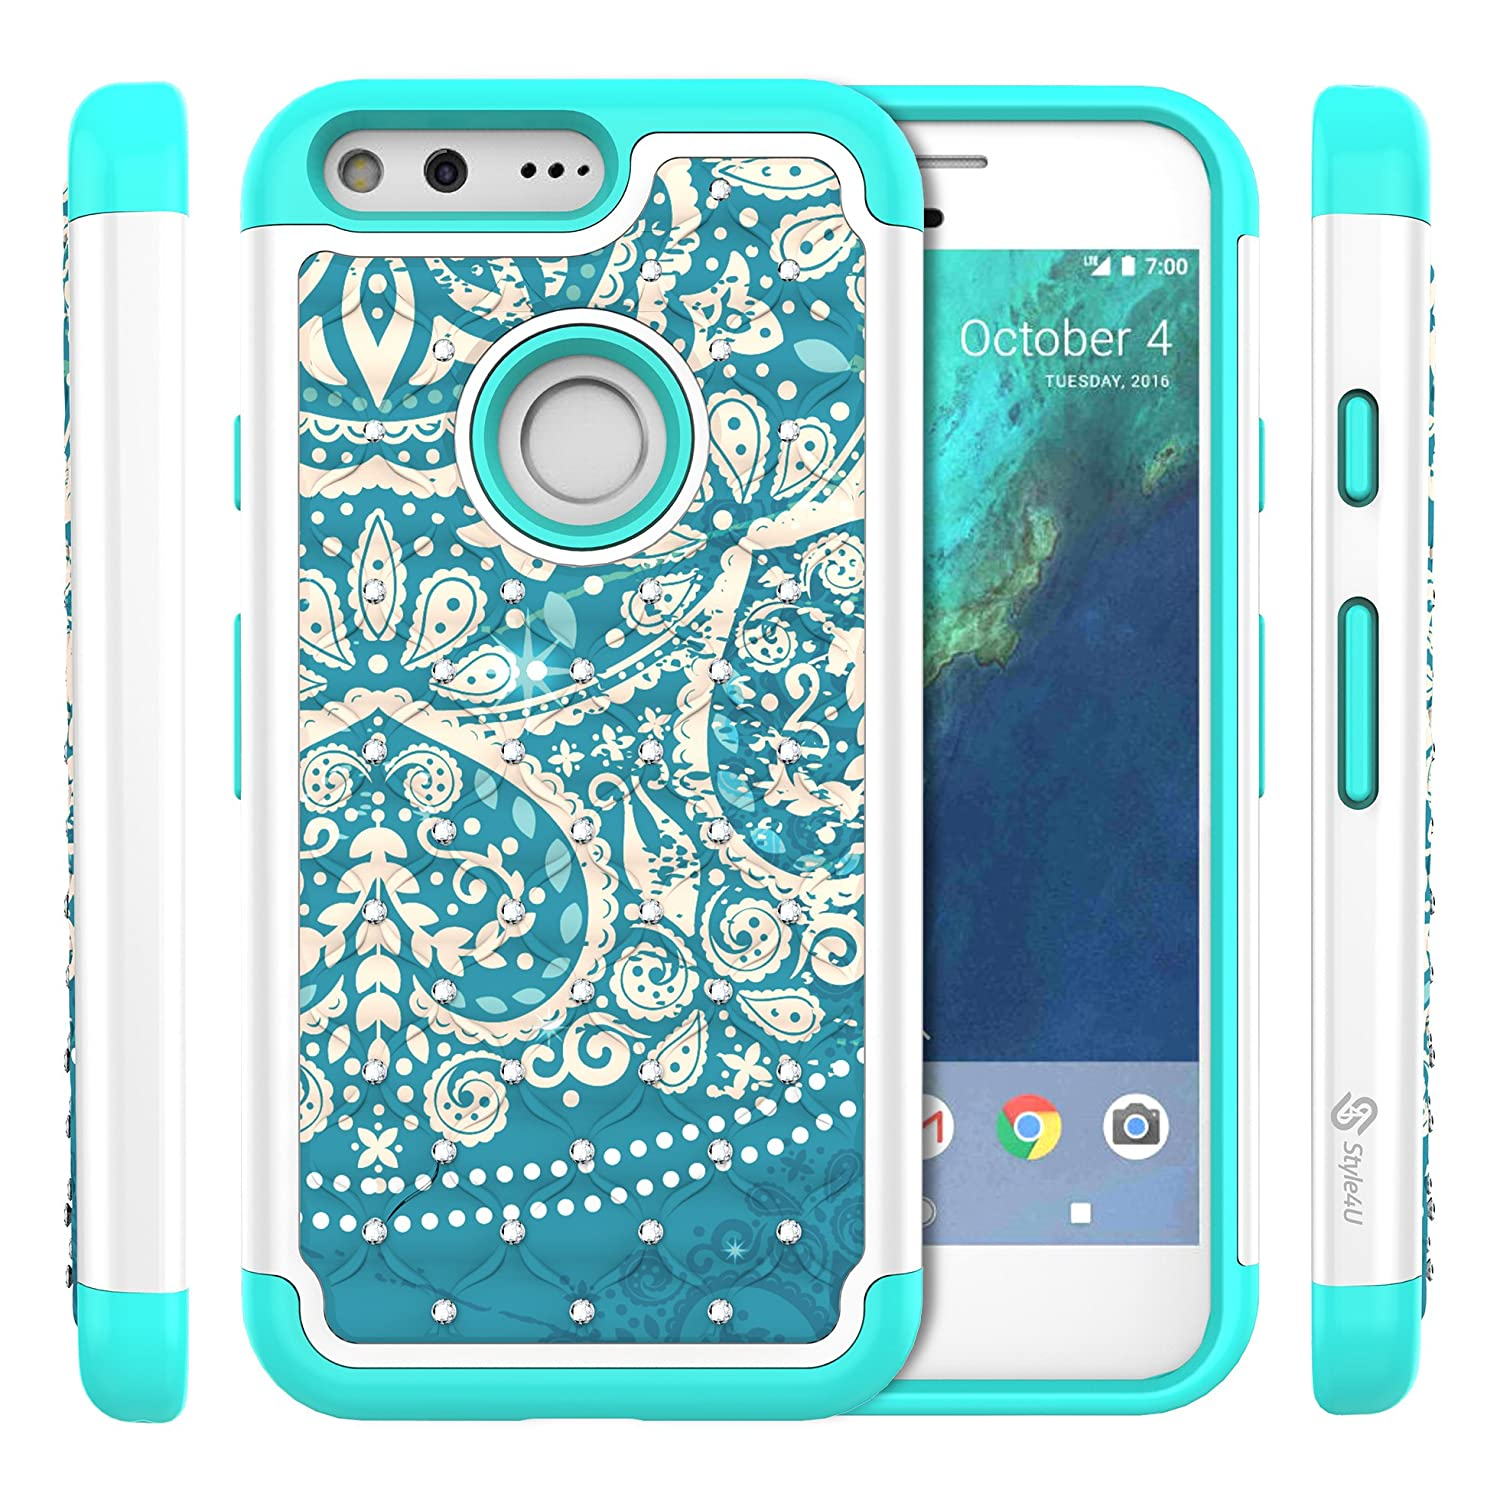 db24b34e30 ... Pixel XL Bling Case, Style4U Studded Rhinestone Crystal Bling Hybrid  Armor Case Cover for Google Pixel XL with 1 Style4U Stylus [Flower White /  Teal]